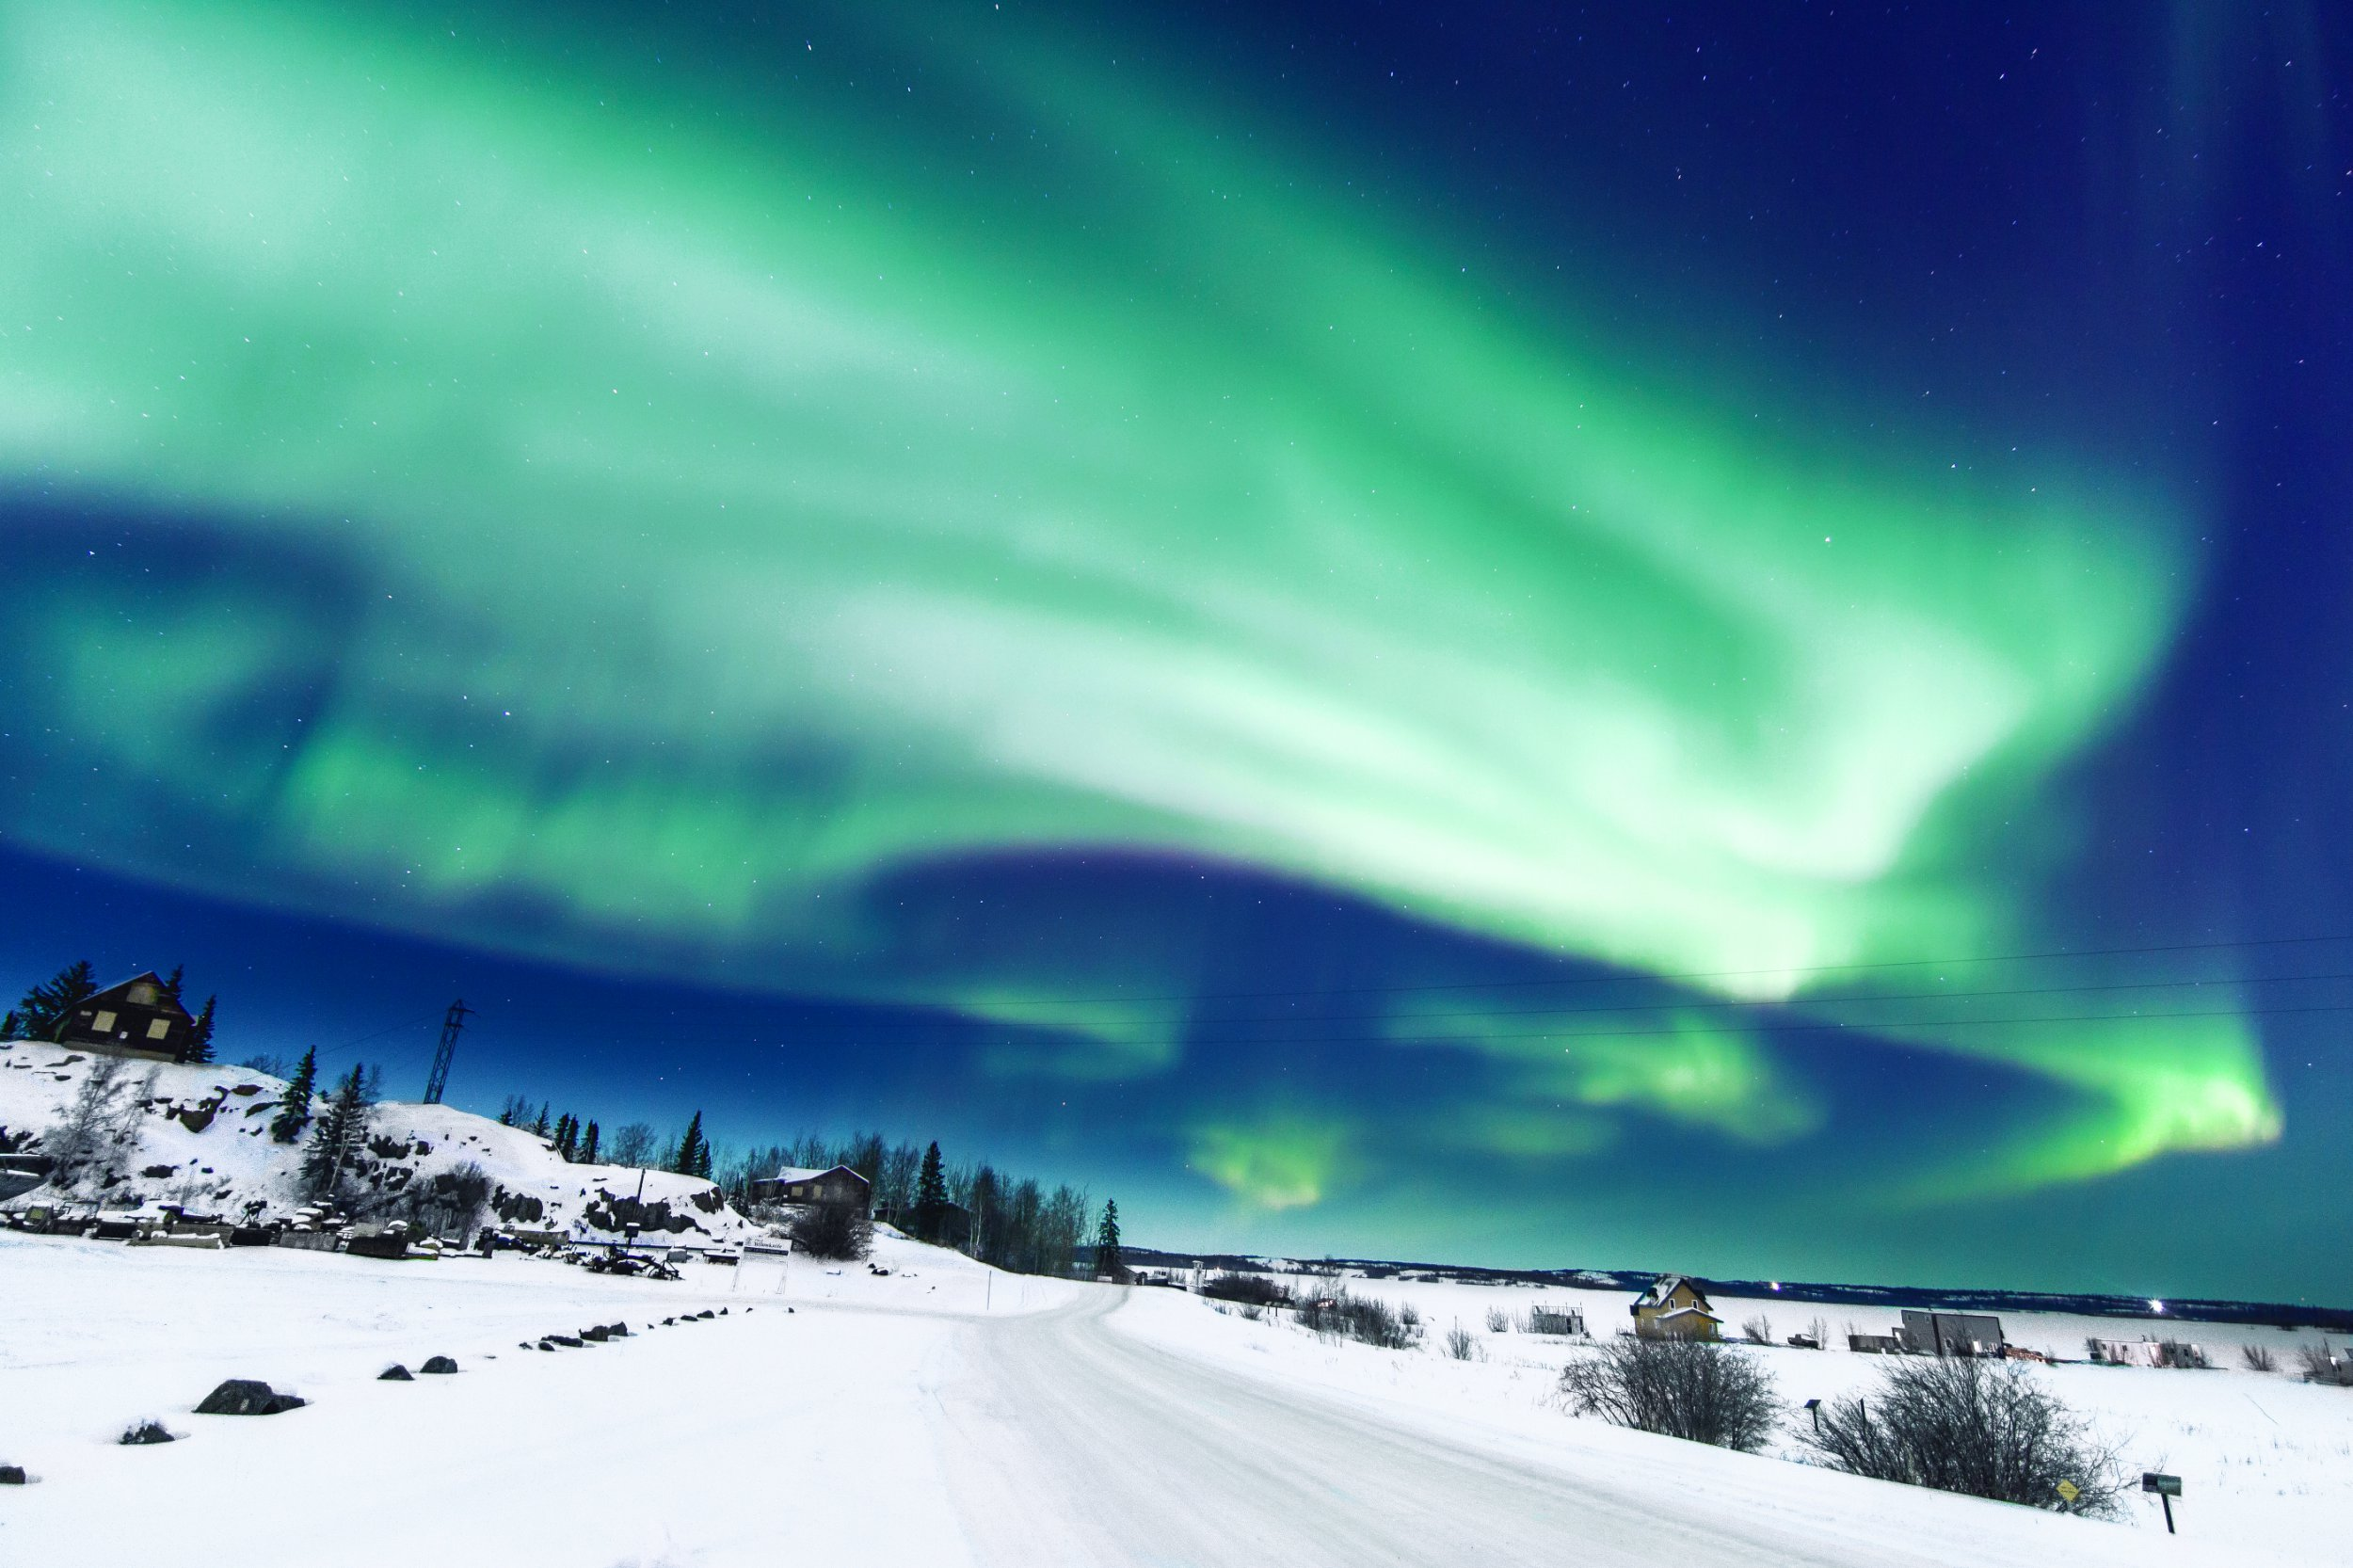 Northern Lights over a snow-covered road close to Yellowknife in the Northwest Territories in Canada.